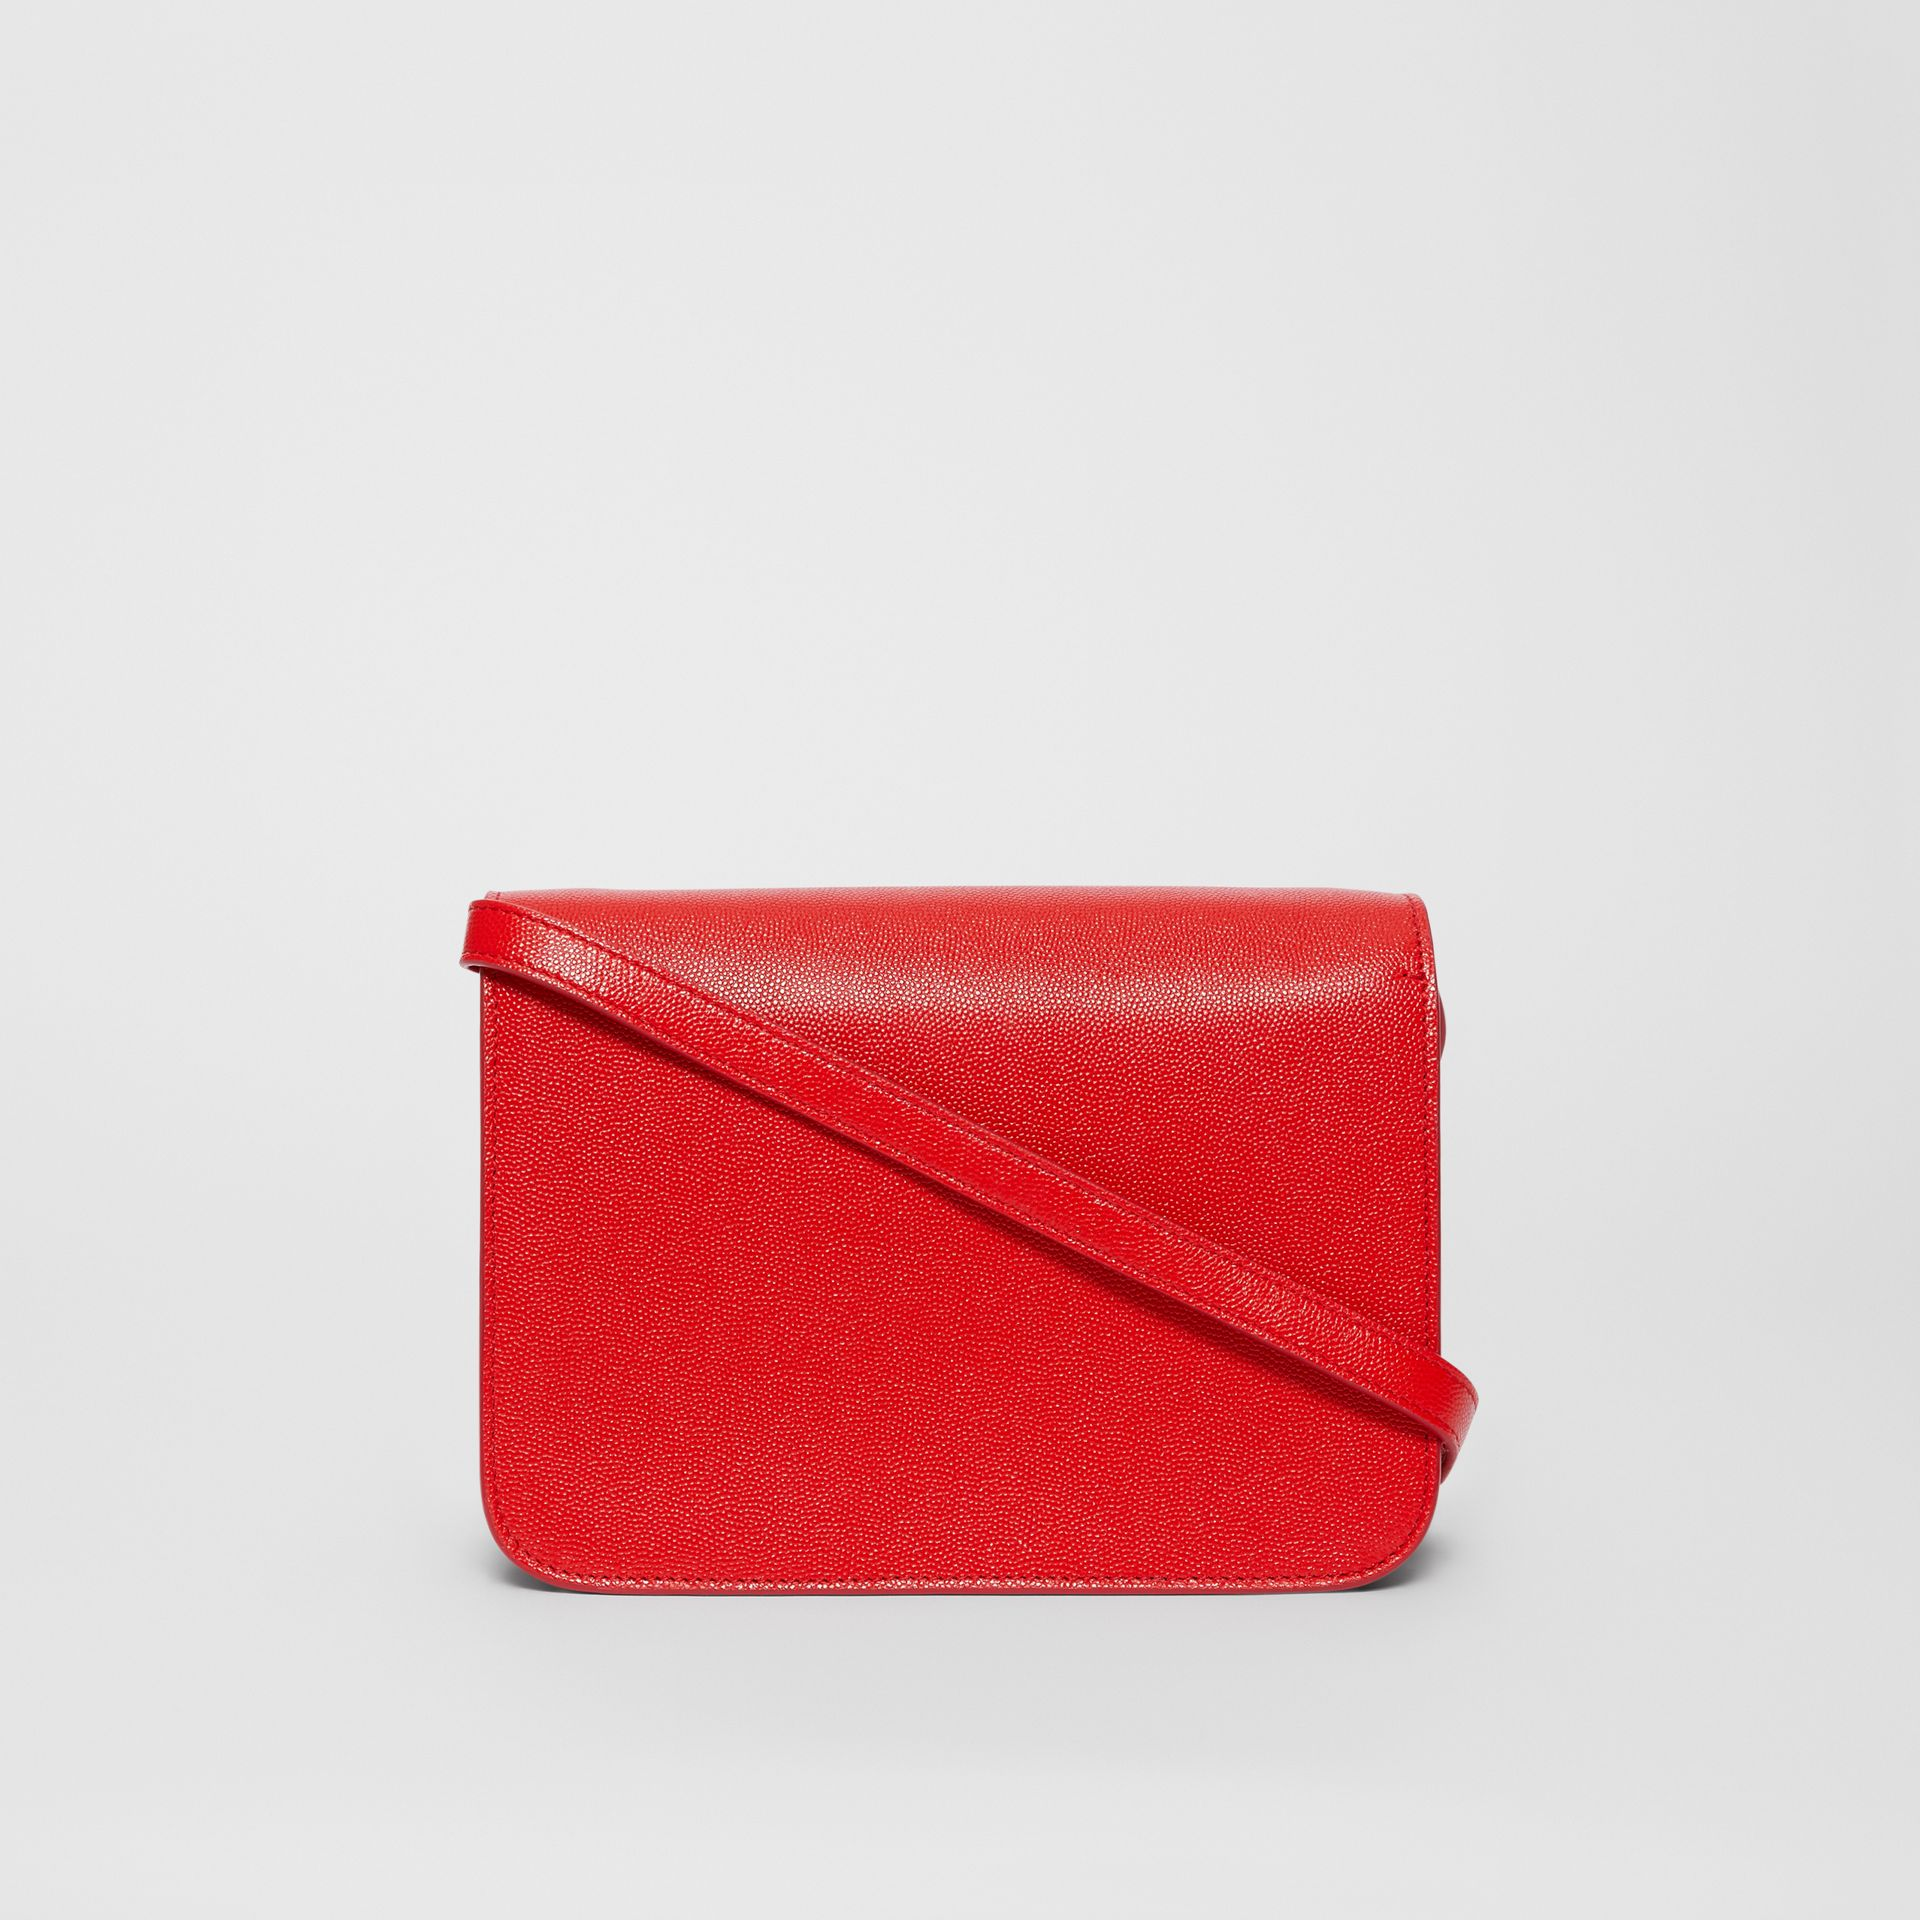 Small Grainy Leather TB Bag in Bright Red - Women | Burberry Singapore - gallery image 7